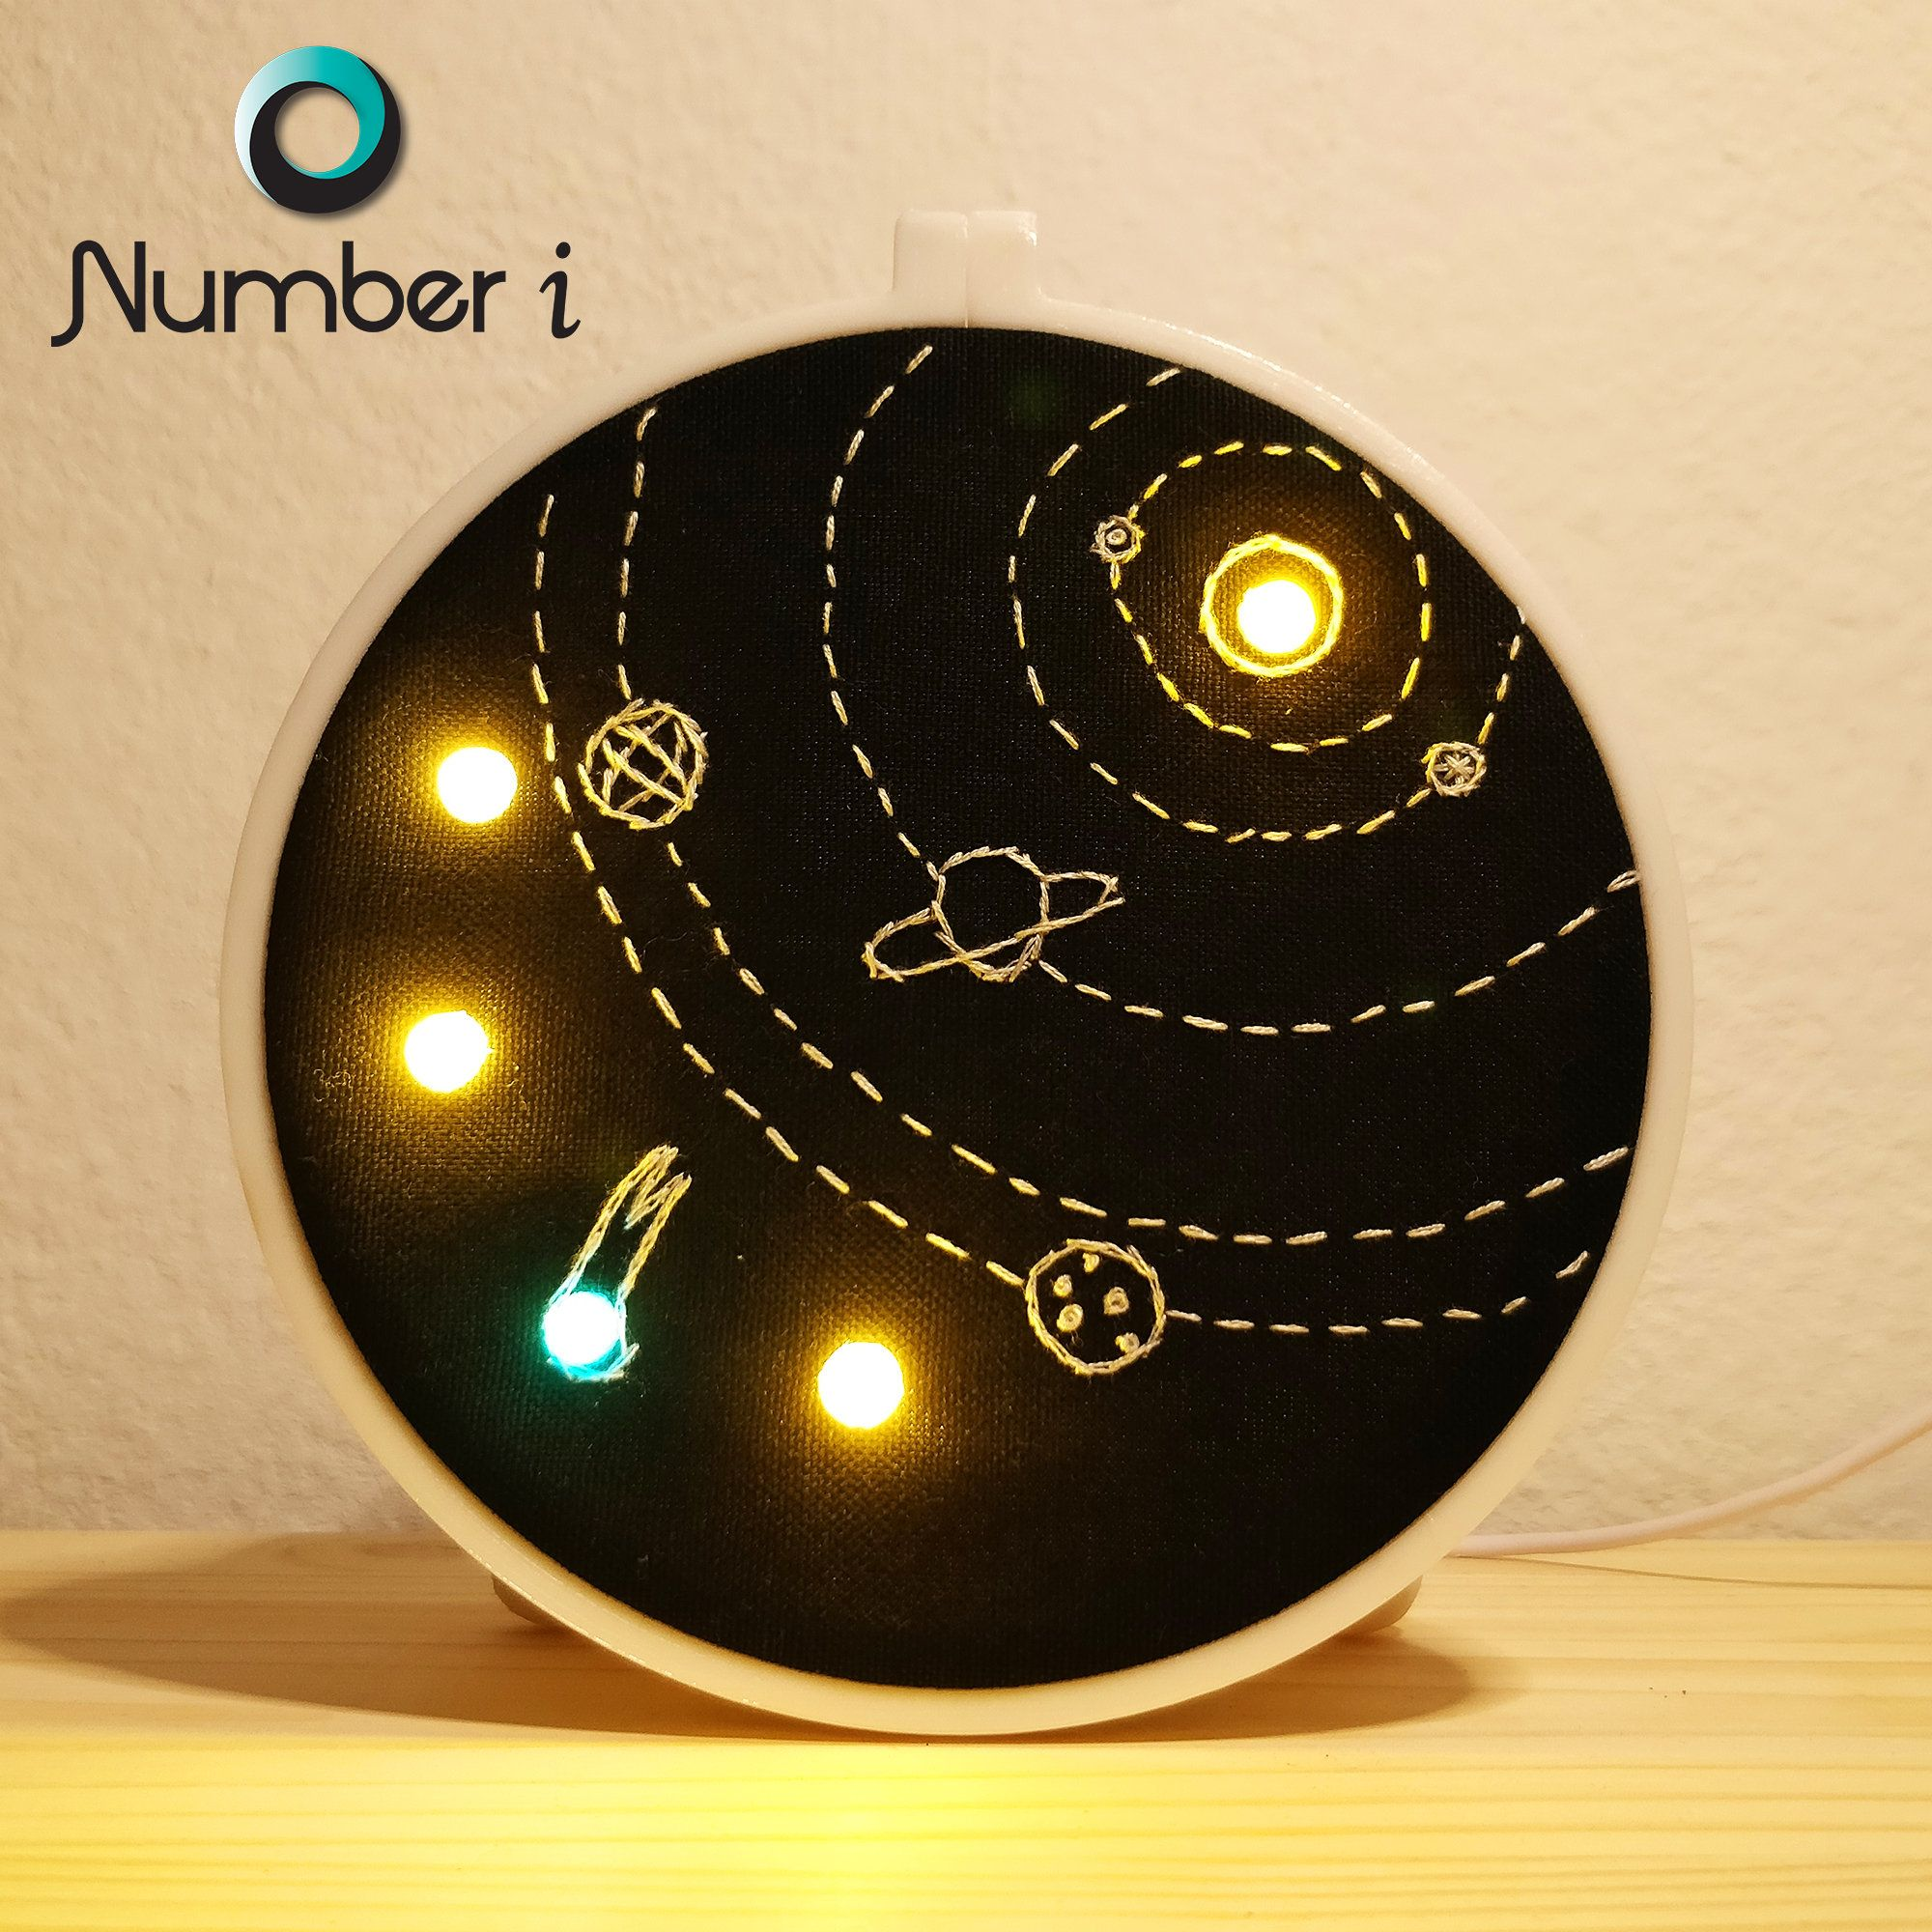 Solar System Night Light Outer Space Theme Bedside Lamp Hand Etsy In 2020 Hoop Art Embroidery Hoop Wall Art Solar System Crafts